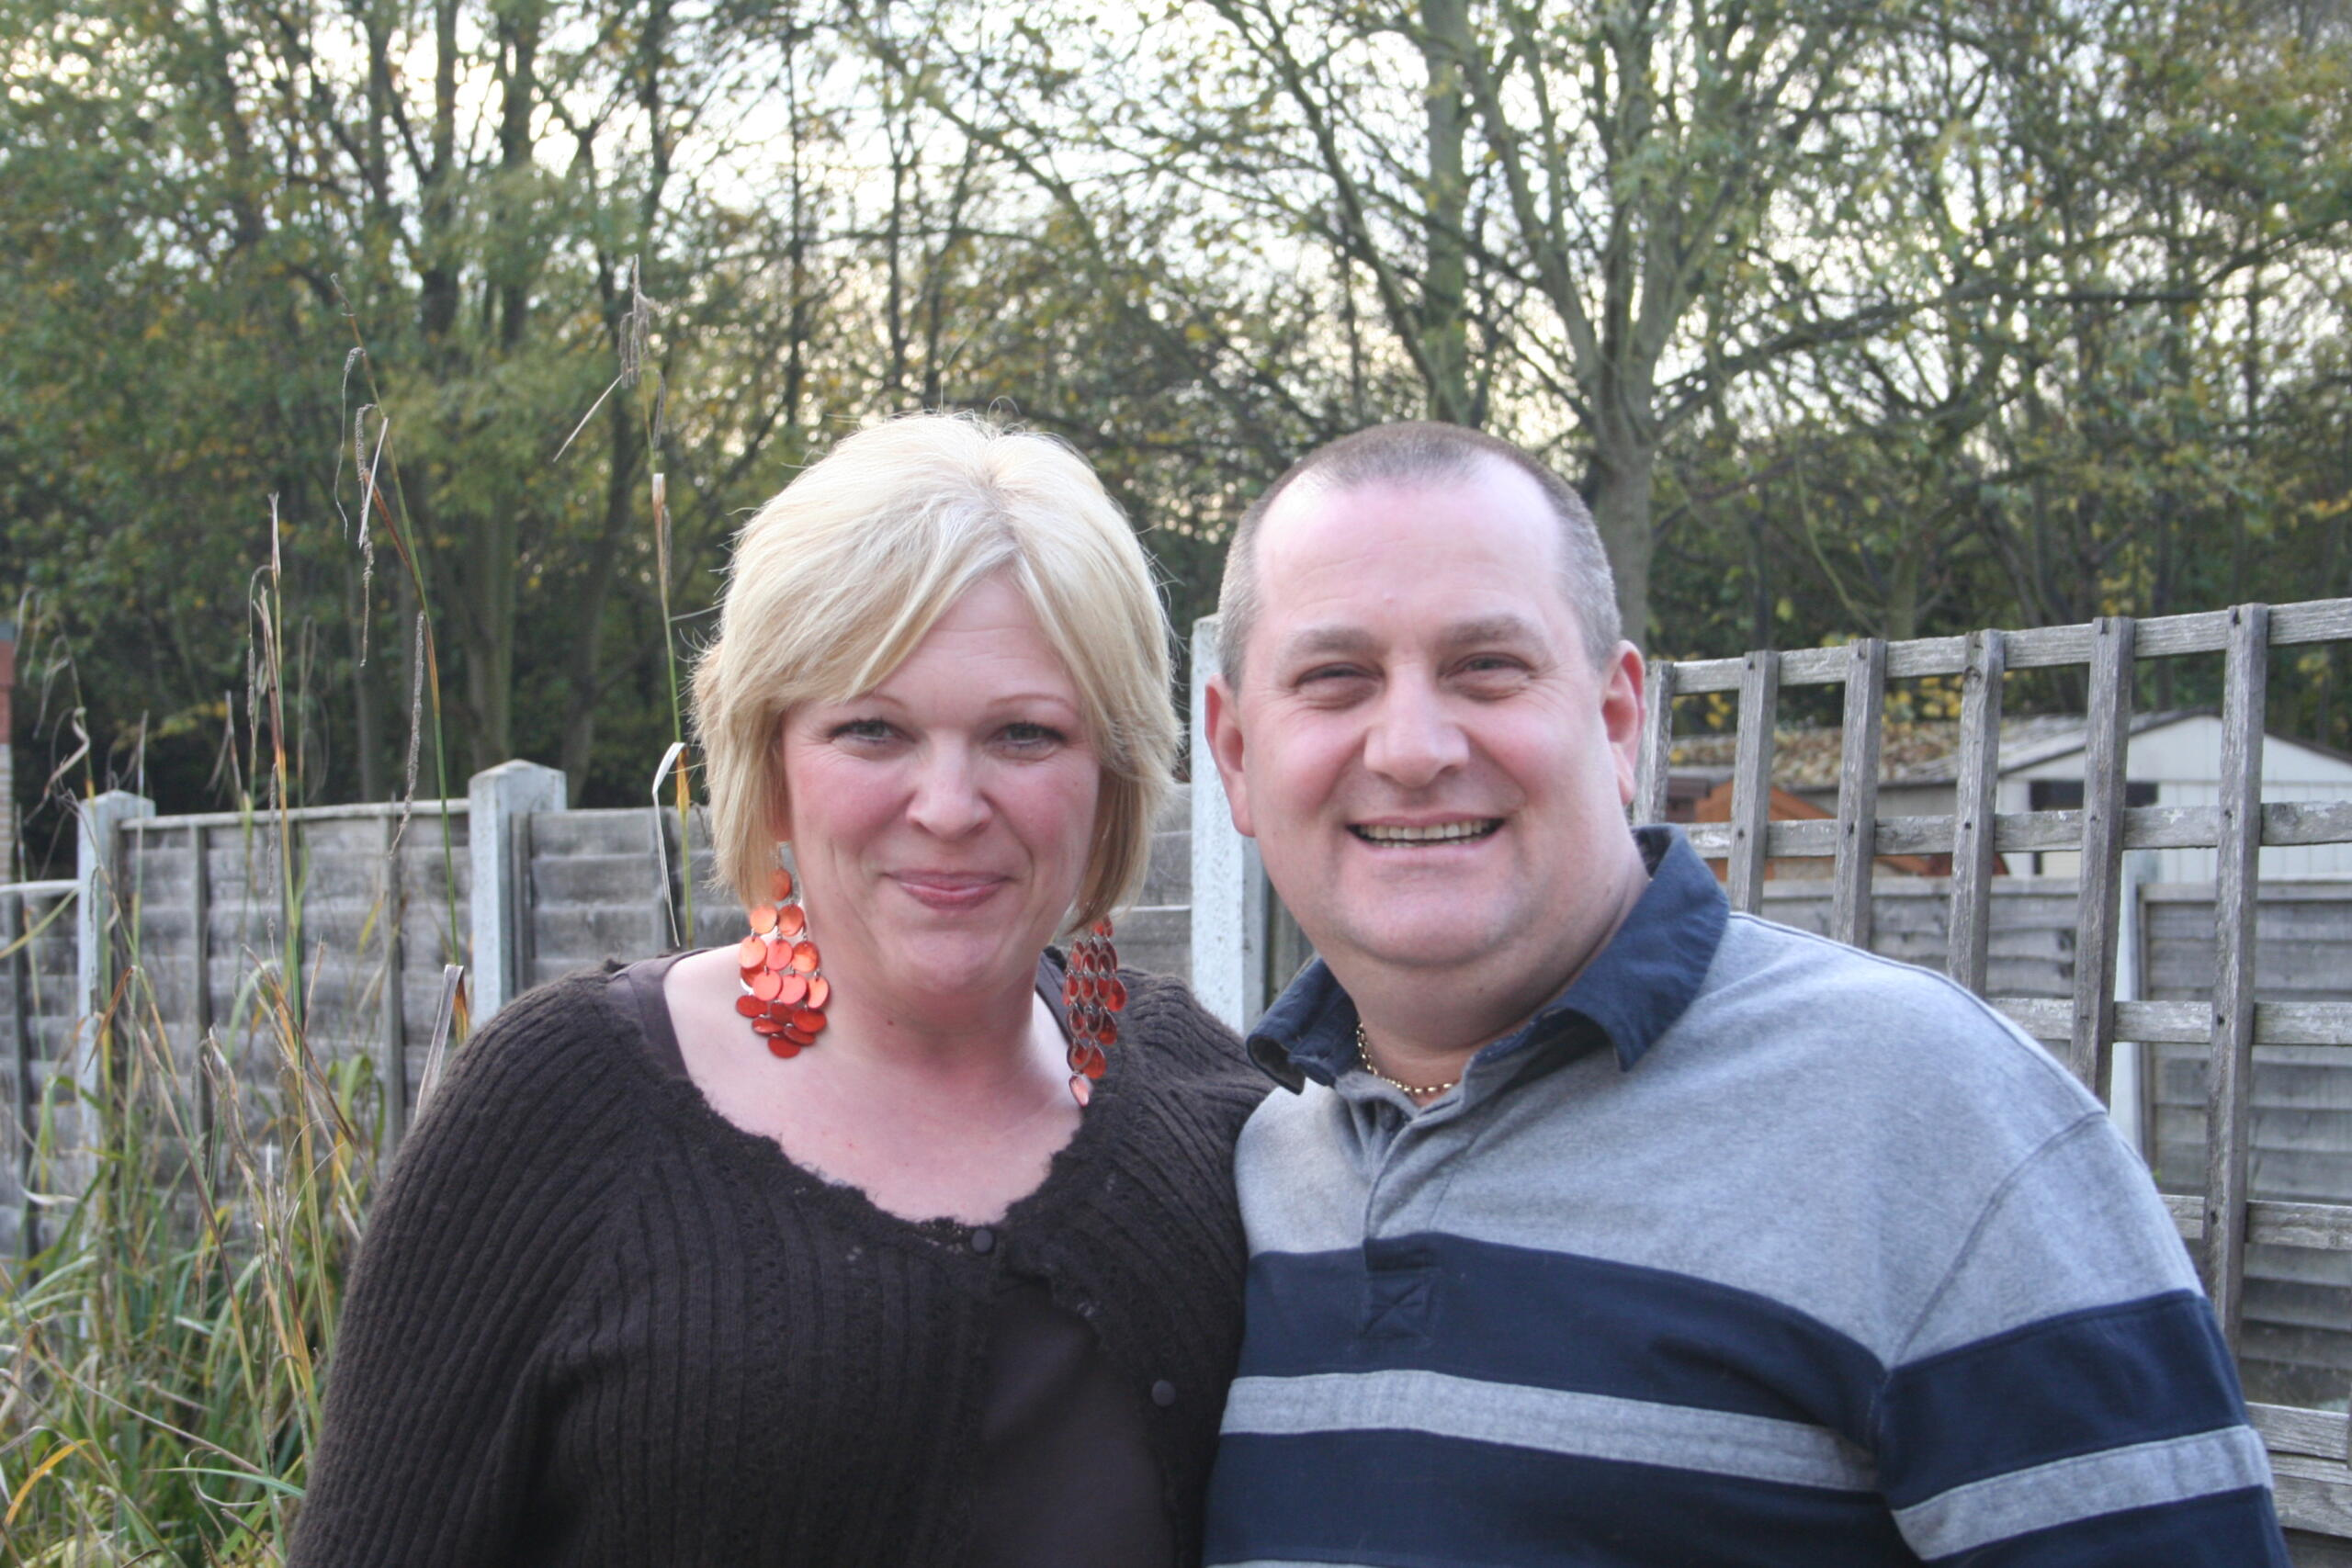 Vicky Huntley and Martin Taylor